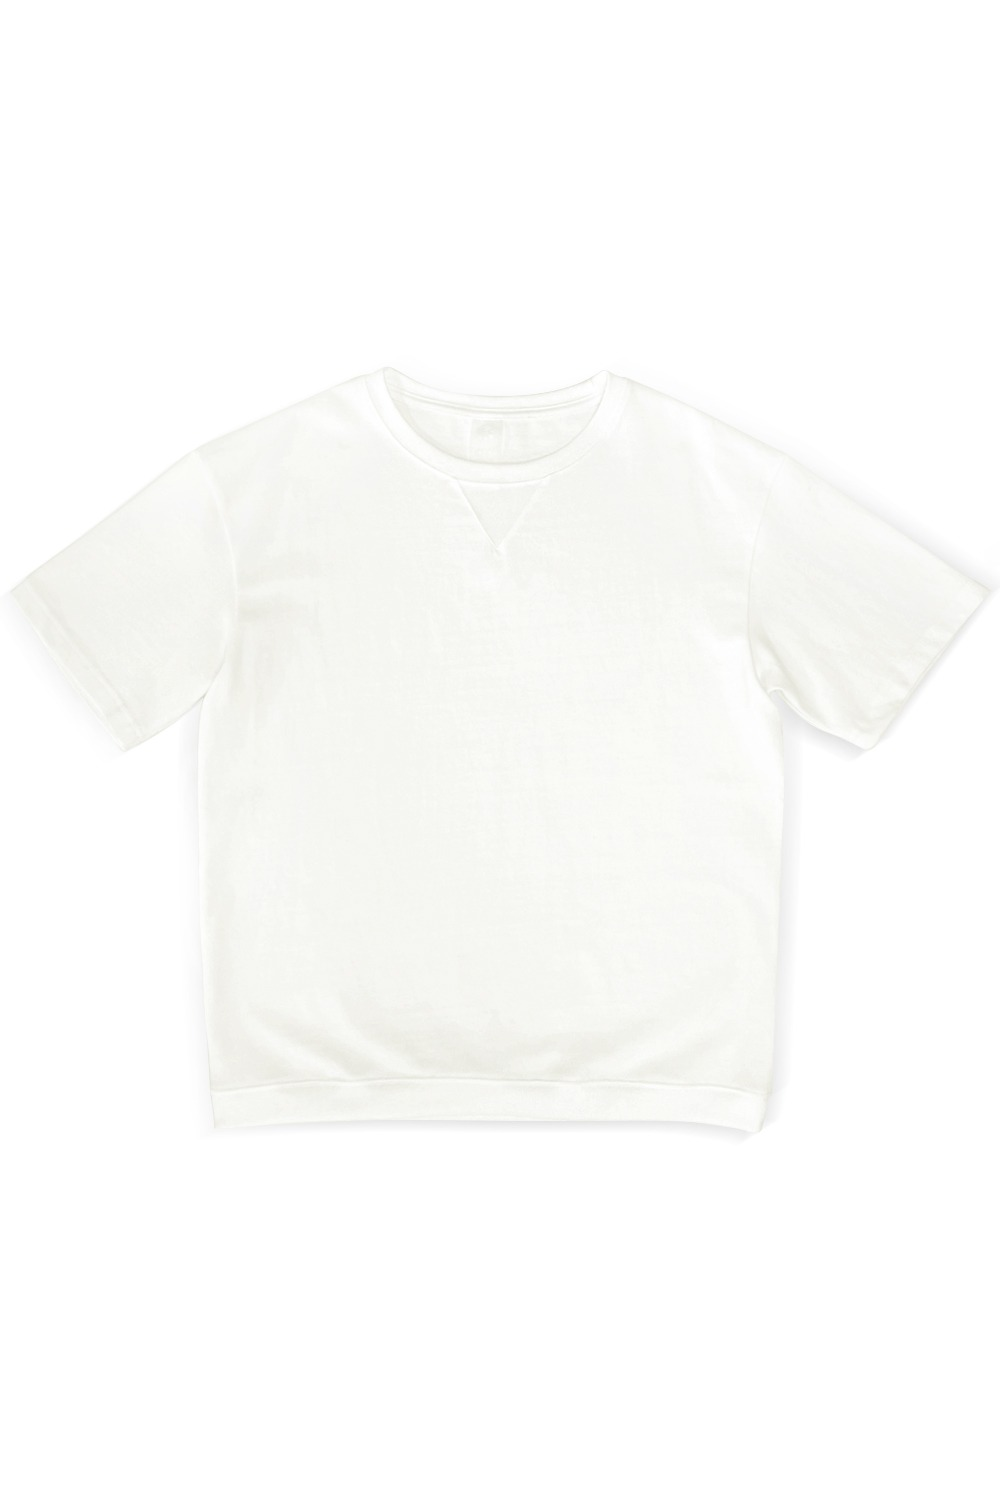 DAY / ROSA TEE / OFF-WHITE